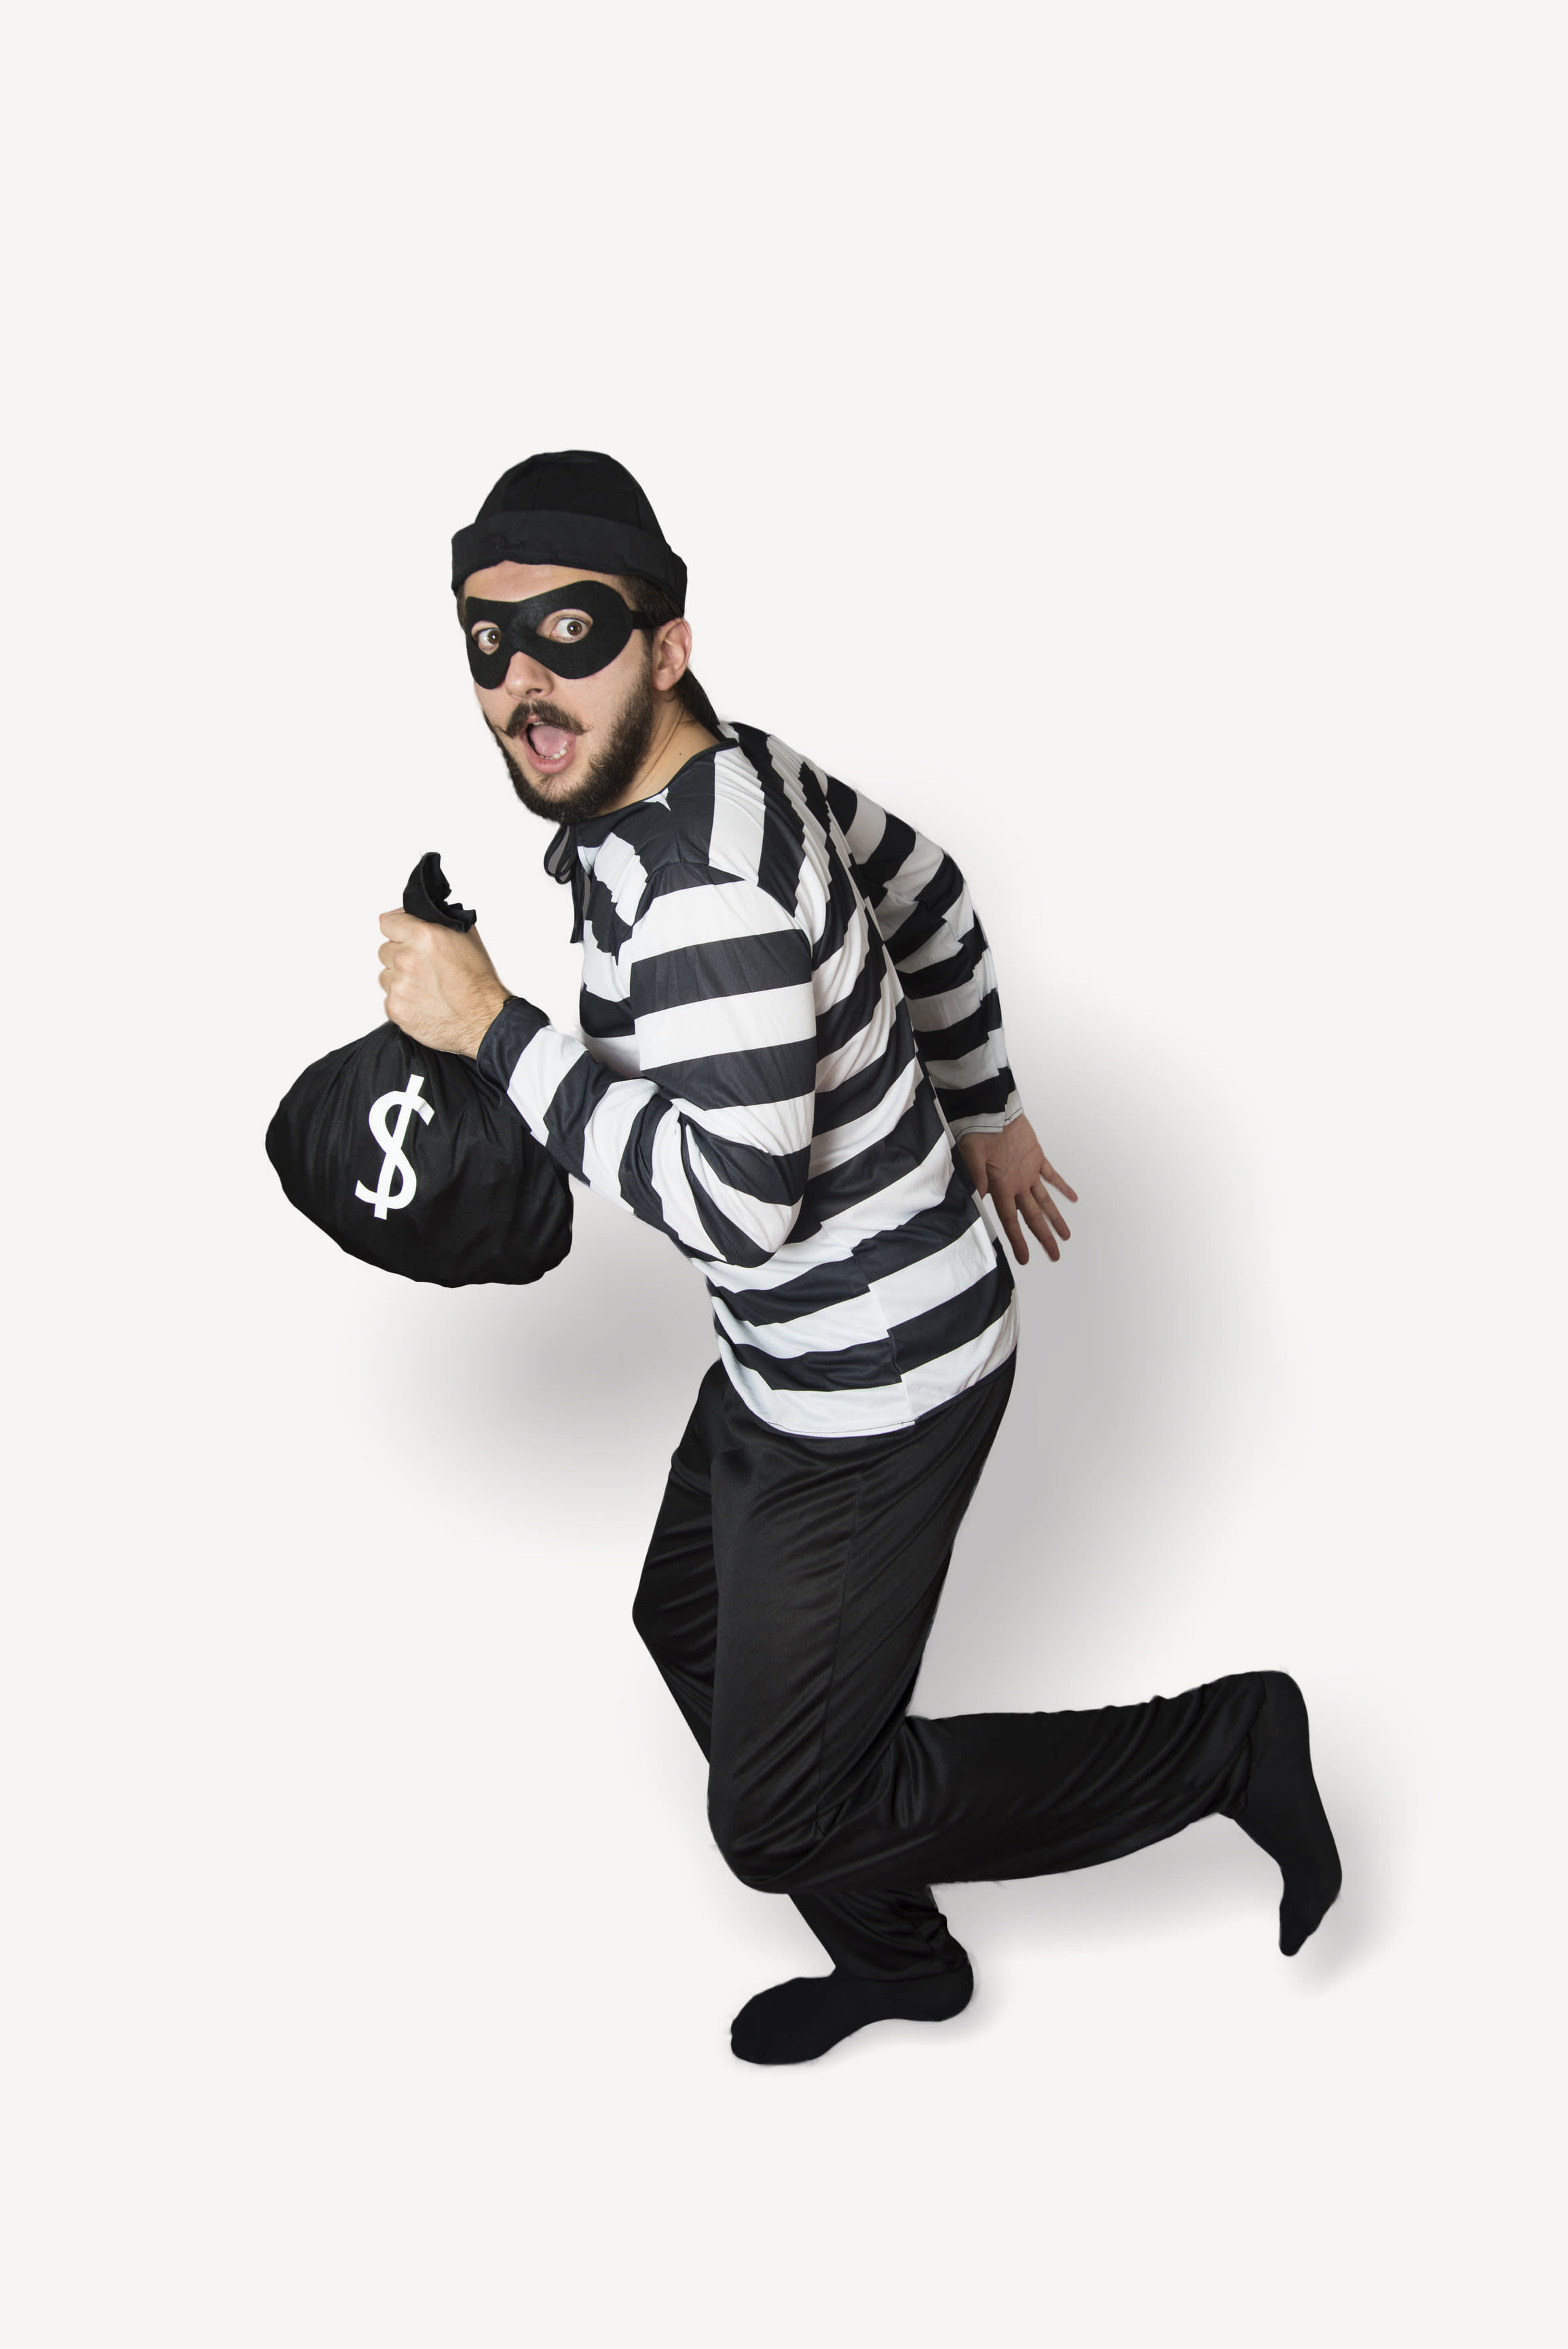 How to get your client's stolen money back